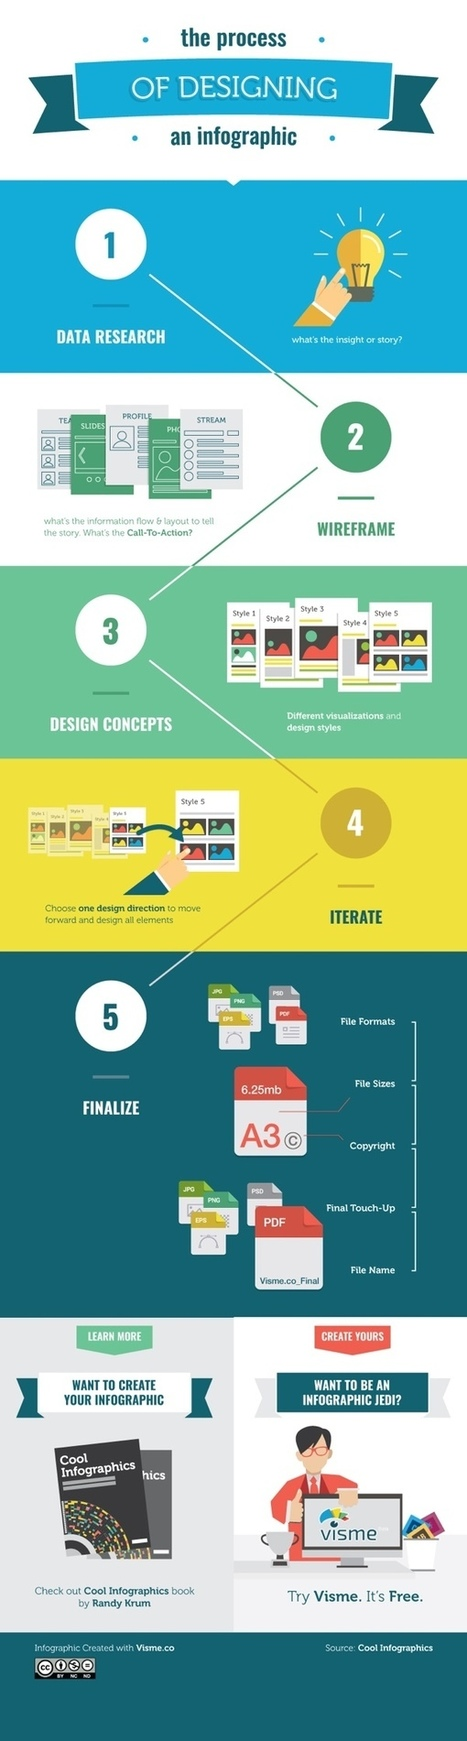 The Process of Designing anInfographic - Blog About Infographics and Data Visualization - Cool Infographics | Infographics in het onderwijs | Scoop.it